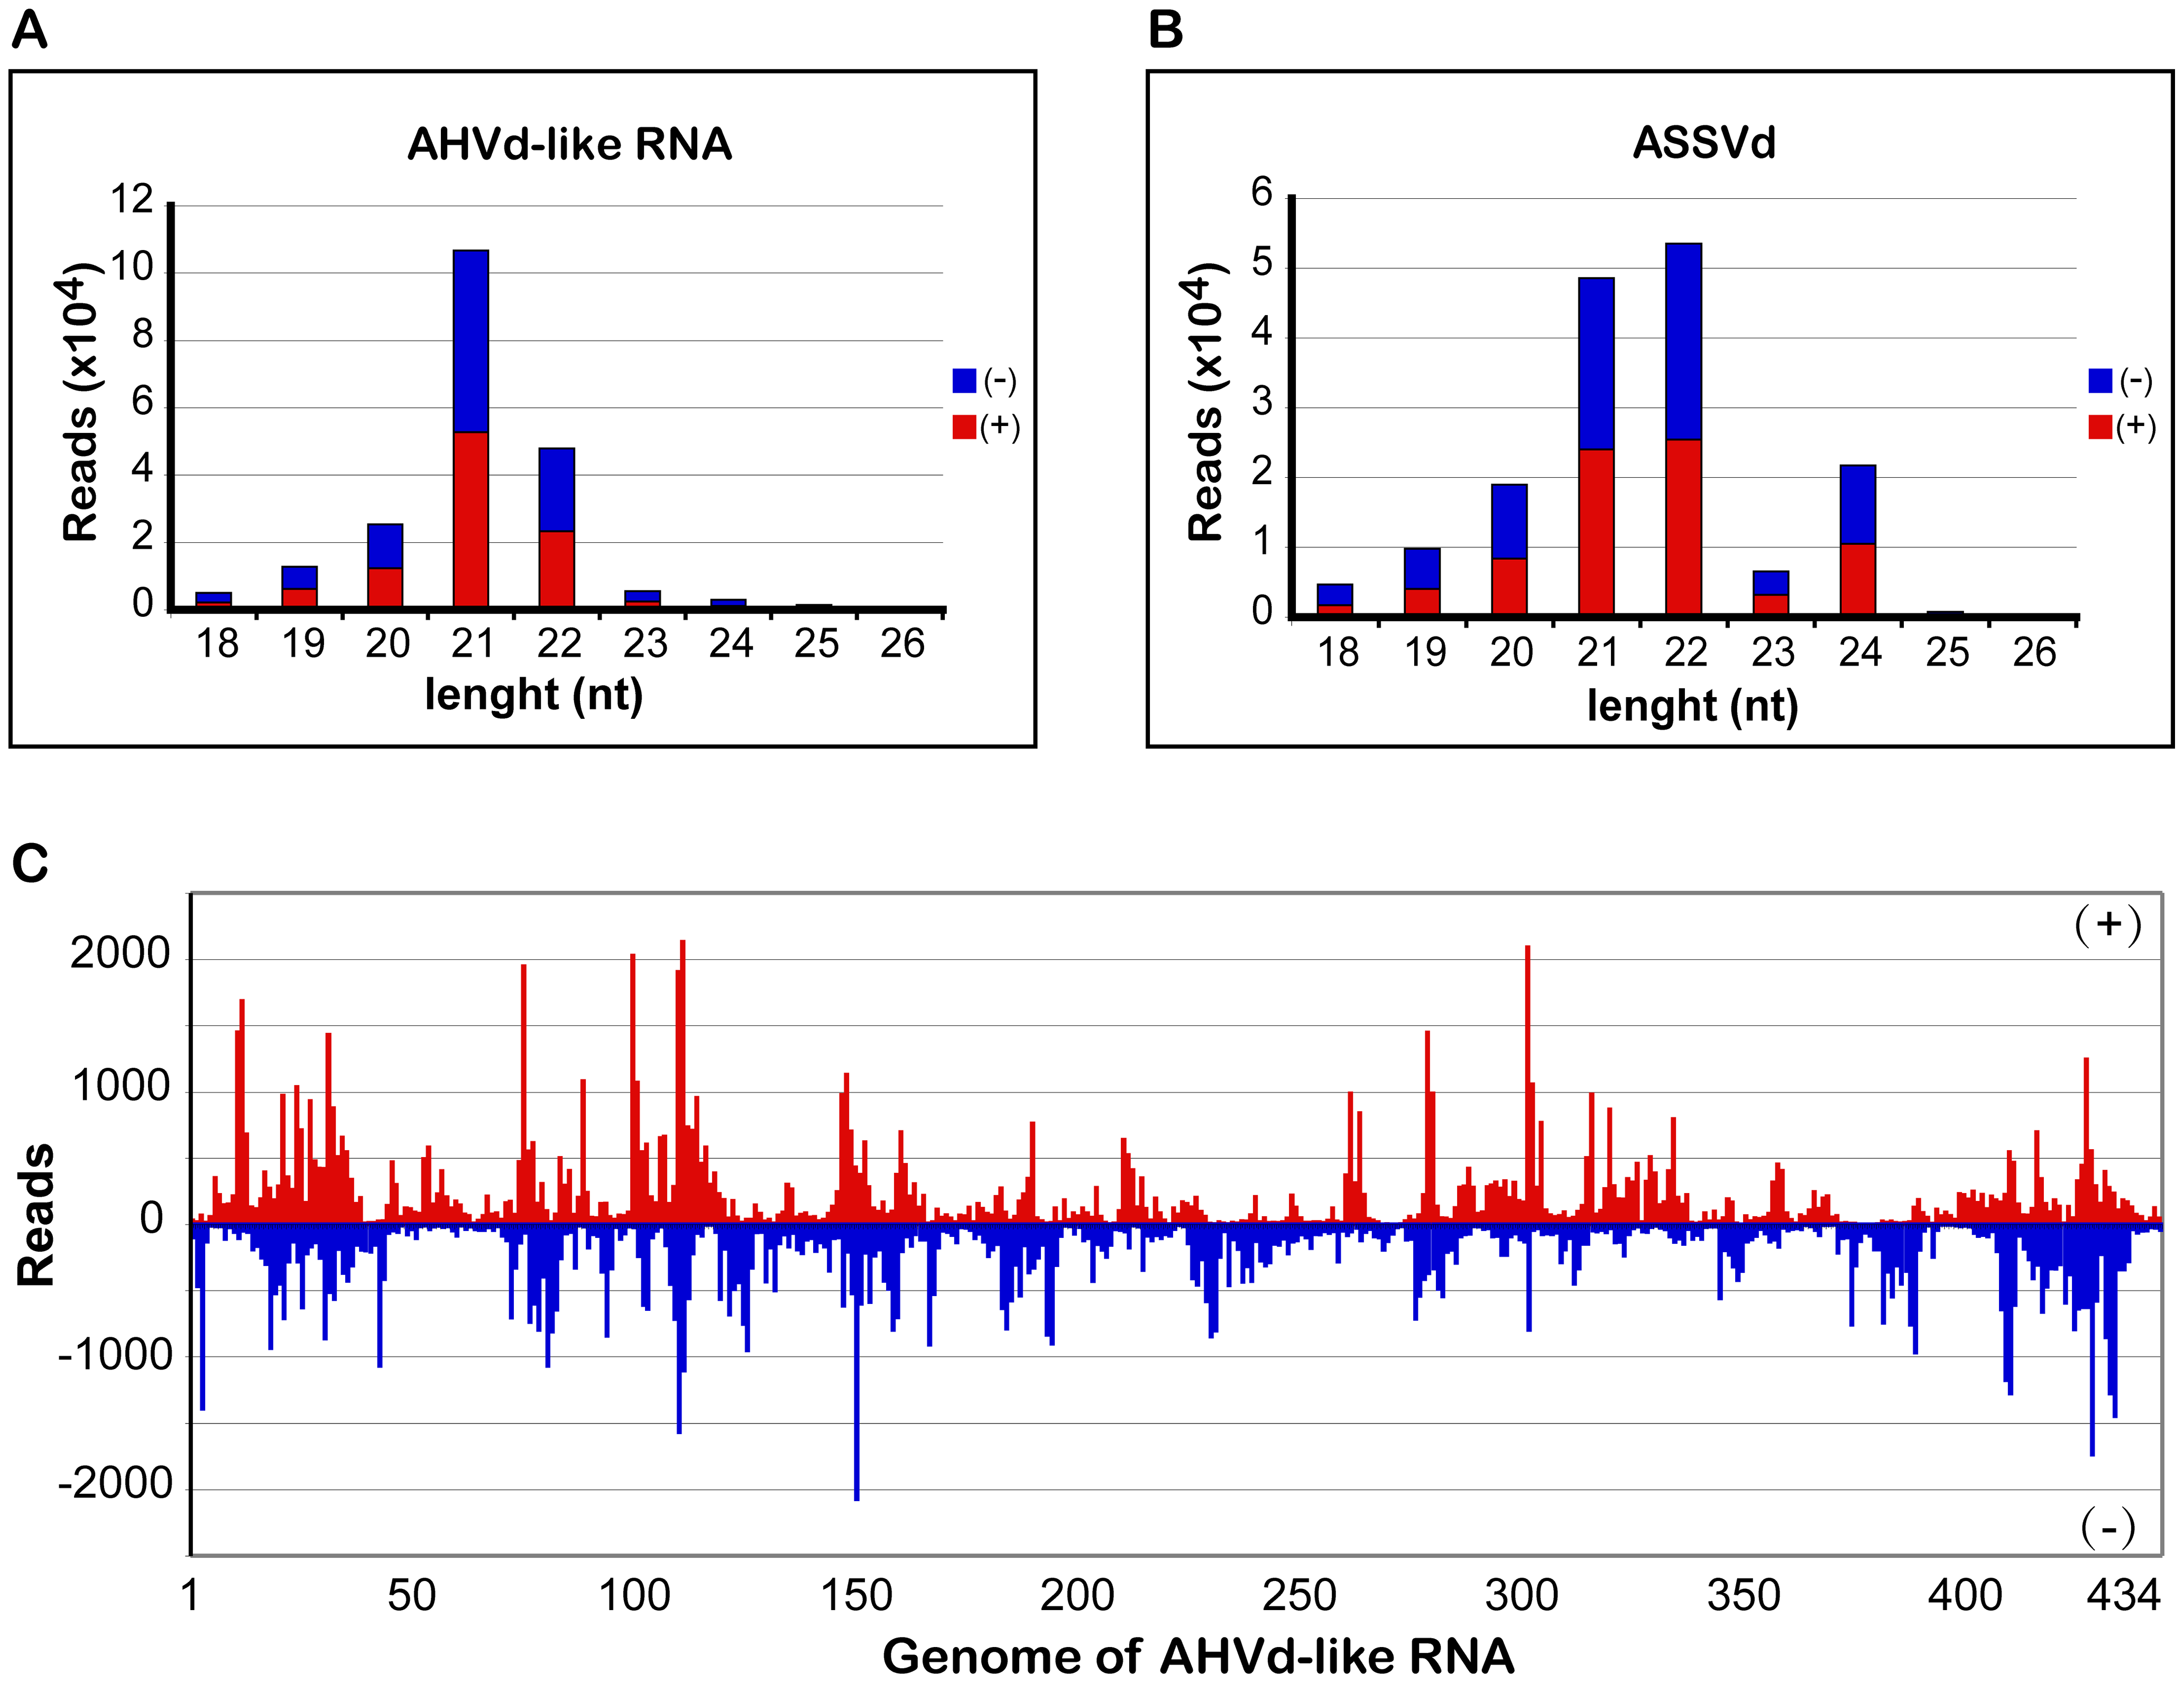 Size distribution and mapping of AHVd-like RNA-specific sRNAs on the AHVd-like RNA genome.